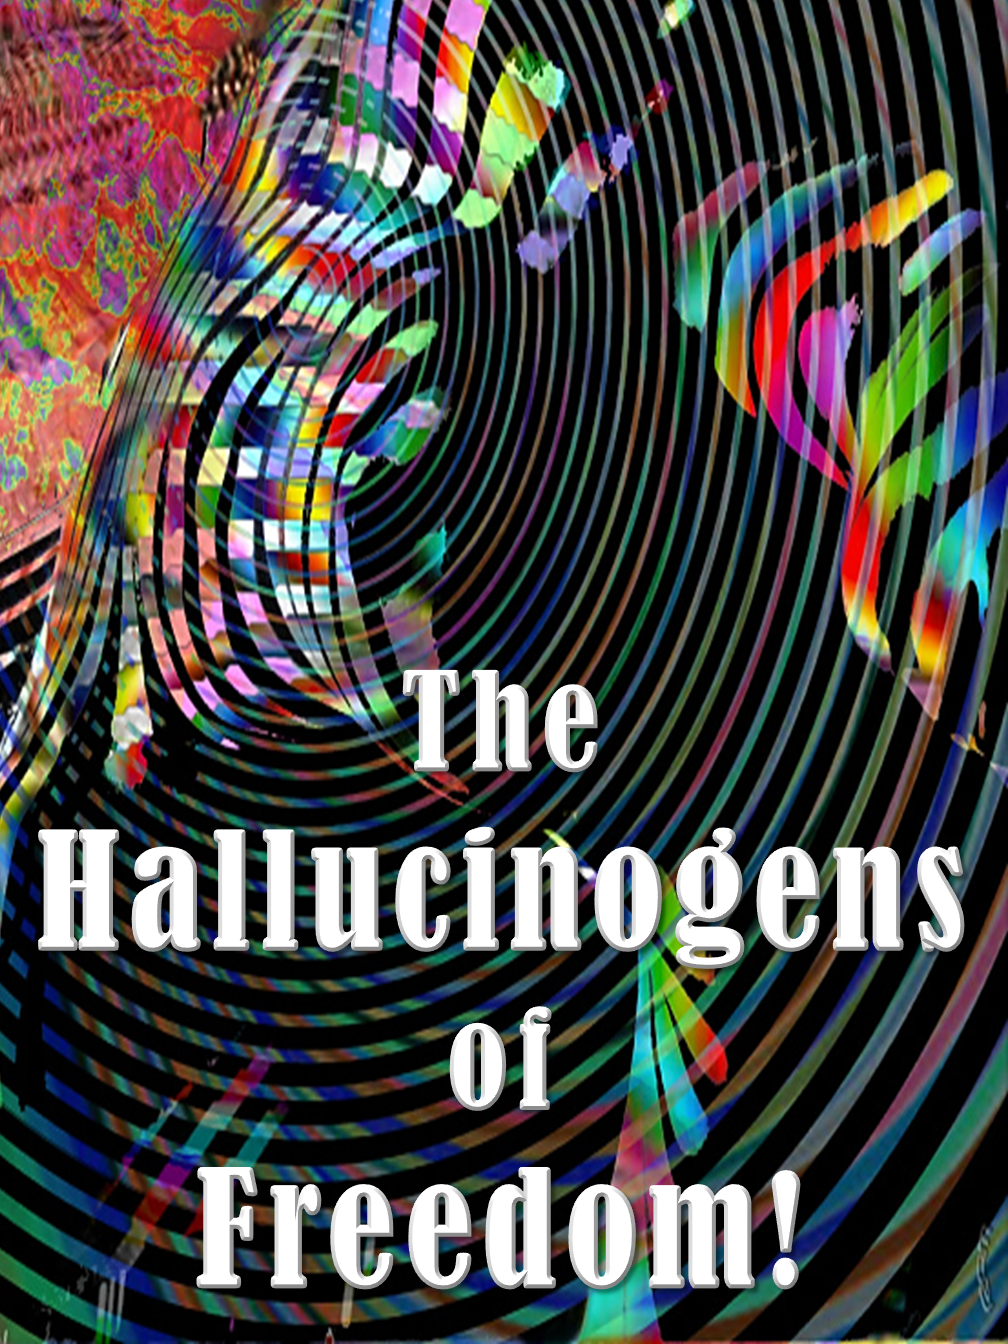 The Hallucinogens of Freedom